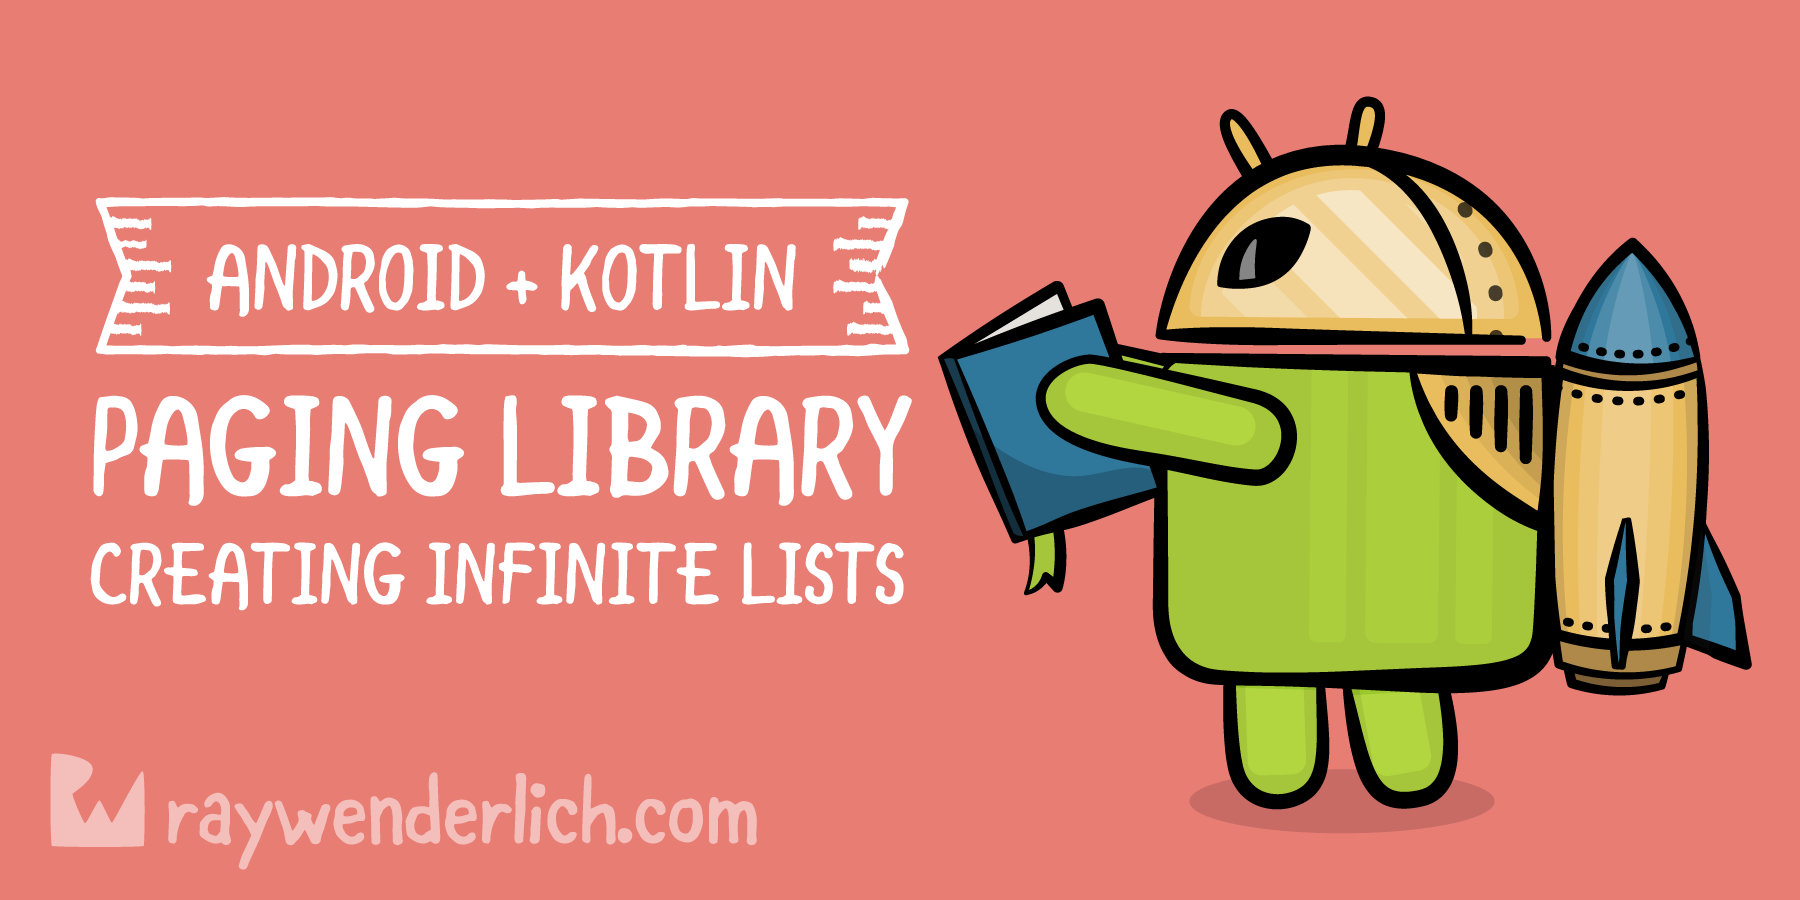 Paging Library for Android With Kotlin: Creating Infinite Lists